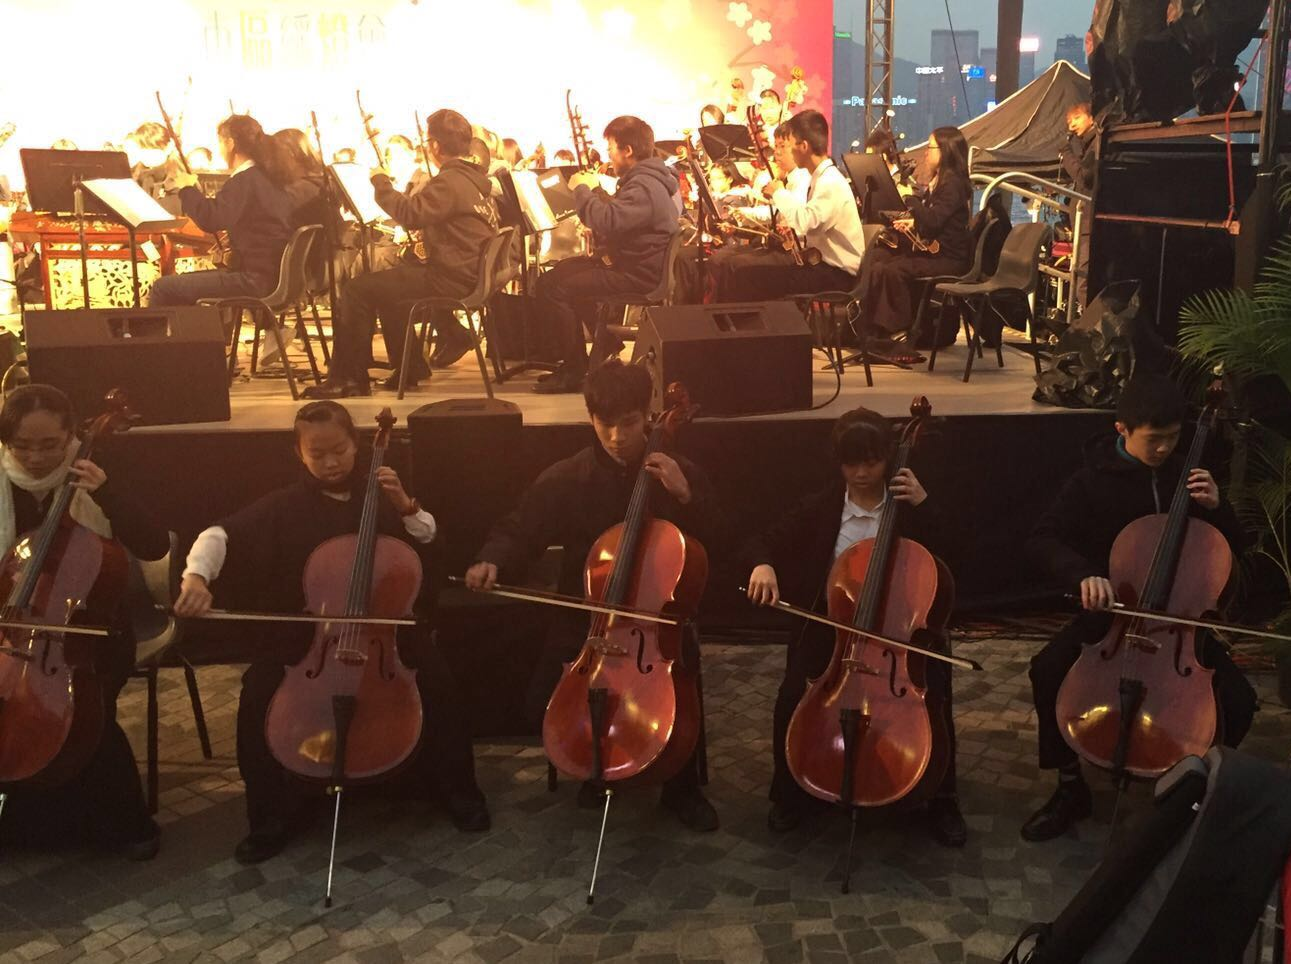 3A Mathra Yip (second right) was playing the cello.